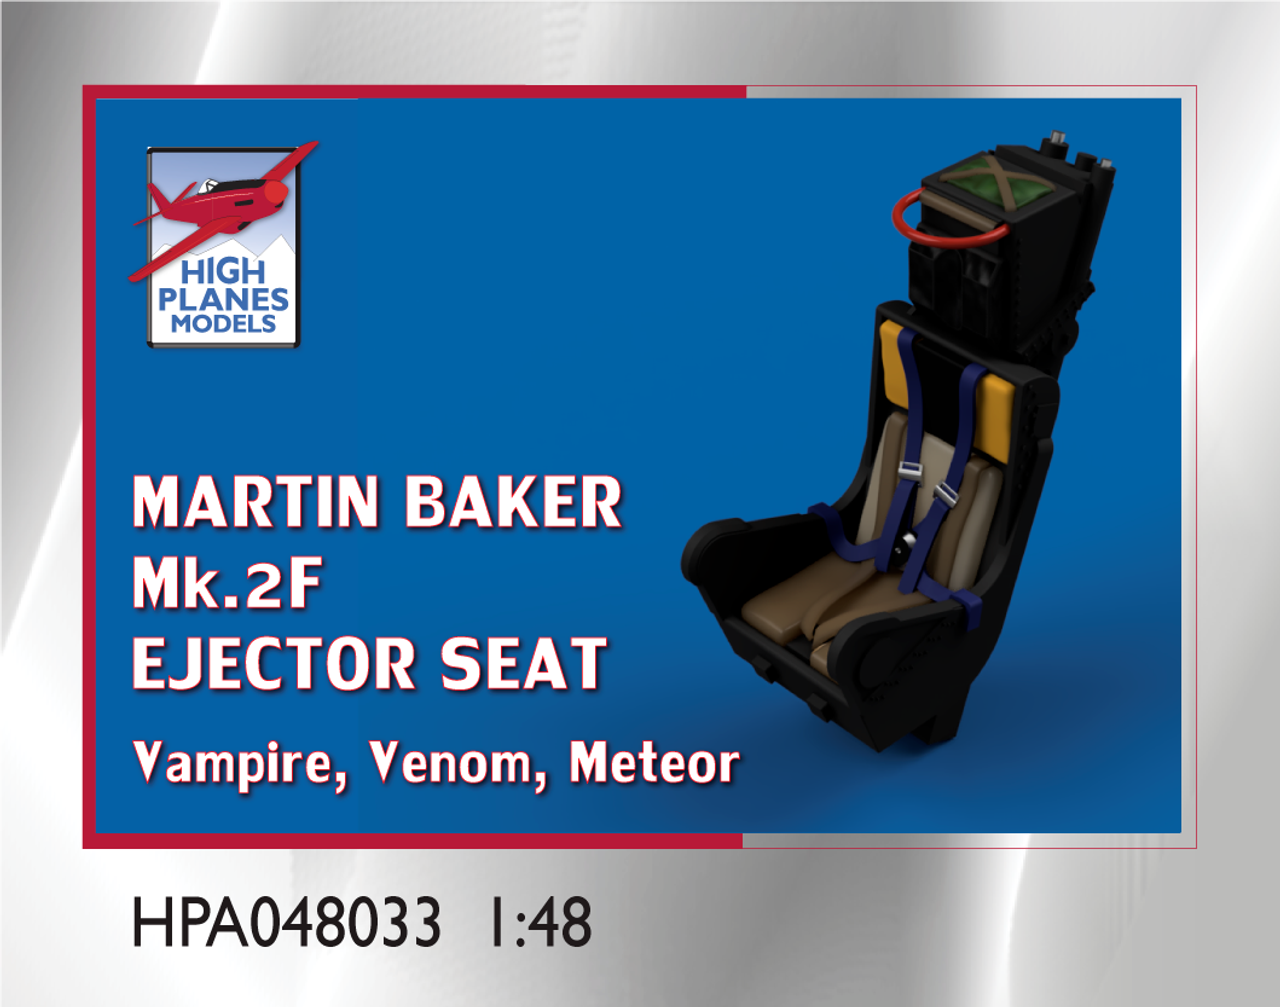 High Planes Martin Baker Mk. 2F Ejector Seat suitable for Vampire, Venom  Accessories 1:48